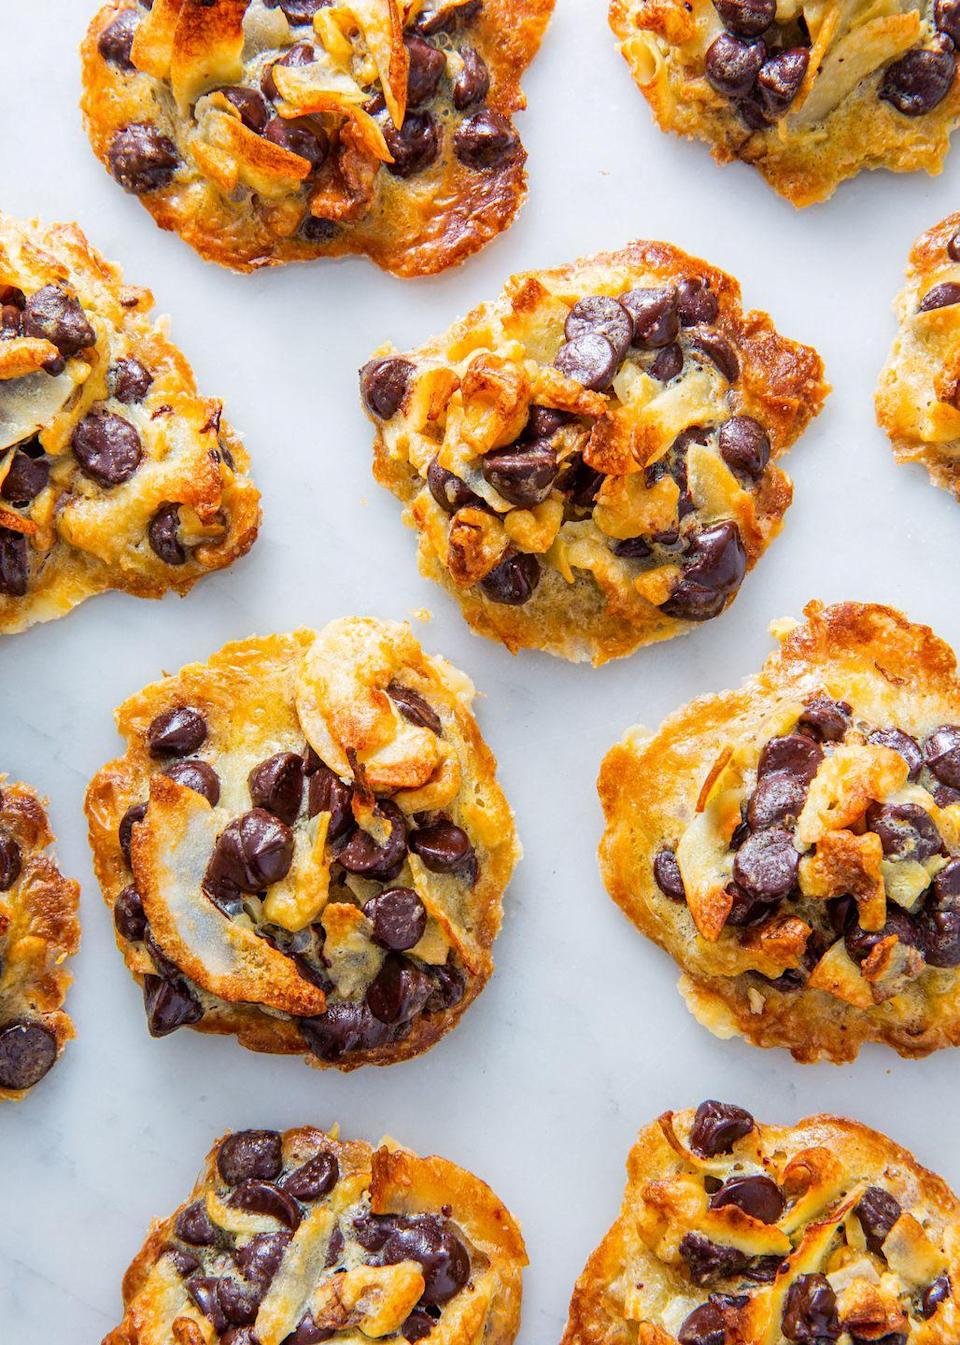 """<p>These cookies are <em>seriously</em> magical. Super easy to make and without any flour, you can feel good about eating way more than just one. </p><p>Get the recipe from <a href=""""https://www.delish.com/cooking/recipe-ideas/a22520519/keto-magic-cookies-recipe/"""" rel=""""nofollow noopener"""" target=""""_blank"""" data-ylk=""""slk:Delish"""" class=""""link rapid-noclick-resp"""">Delish</a>.</p>"""